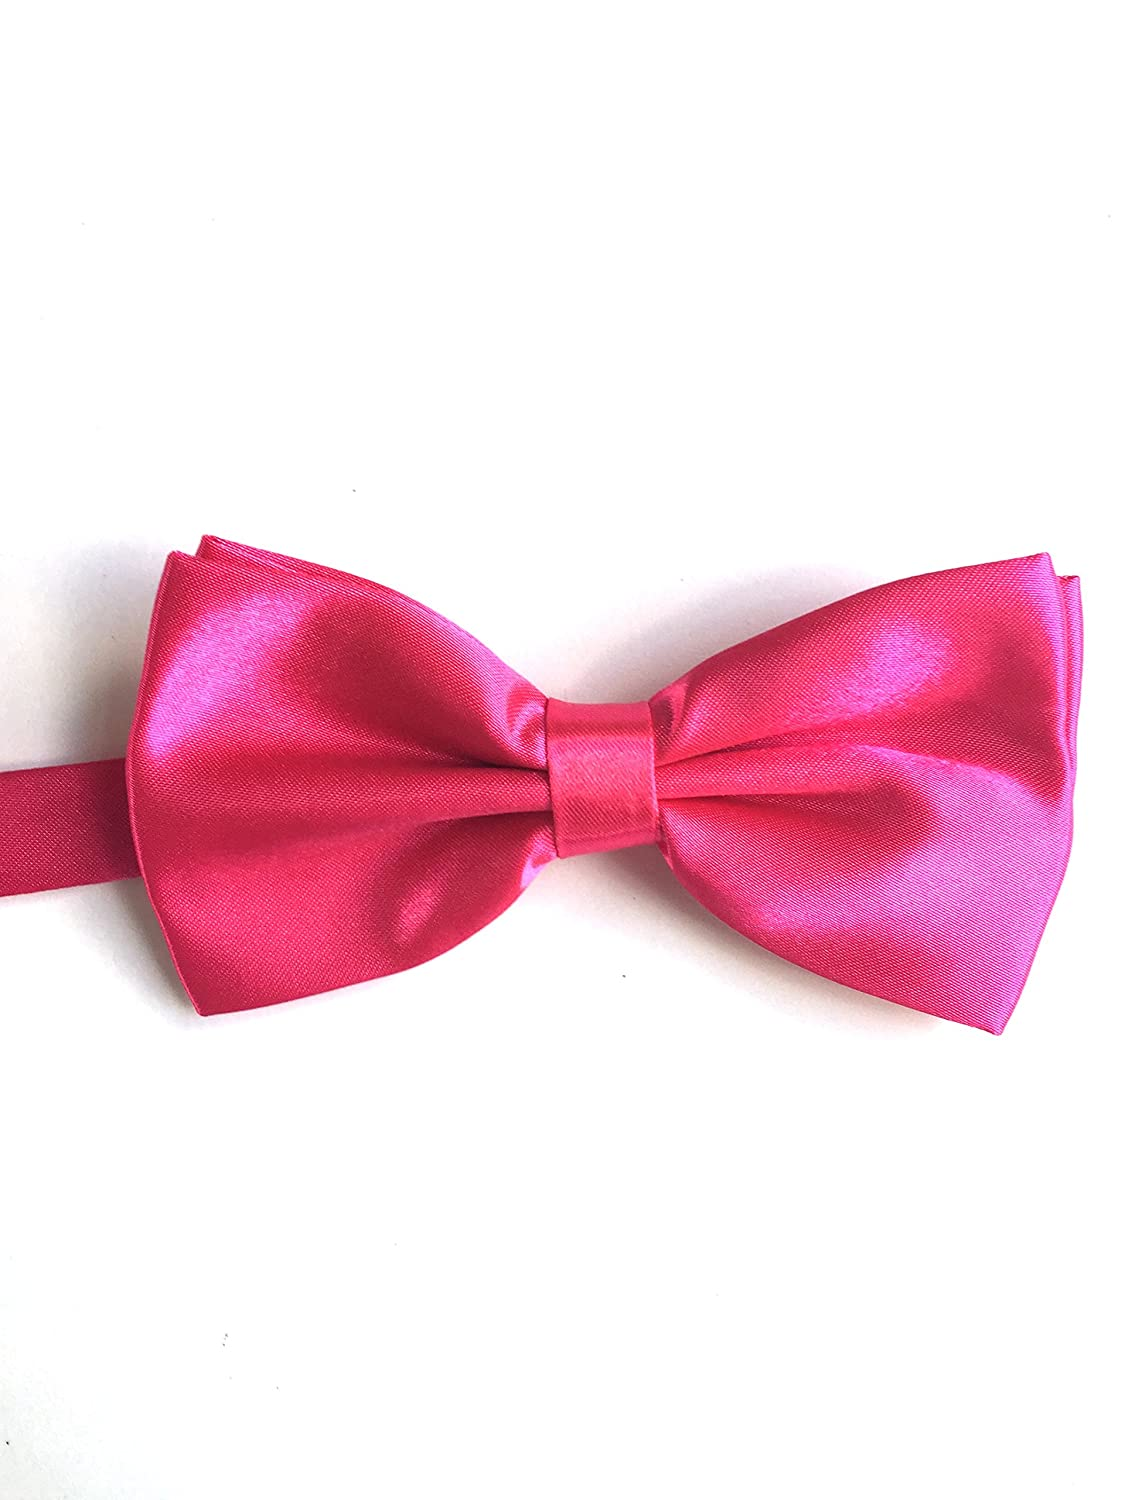 Rodges Standard Size 4.7 Inch Mens Fuchsia Adjustable Strap and Clip On Satin Bowtie Mr